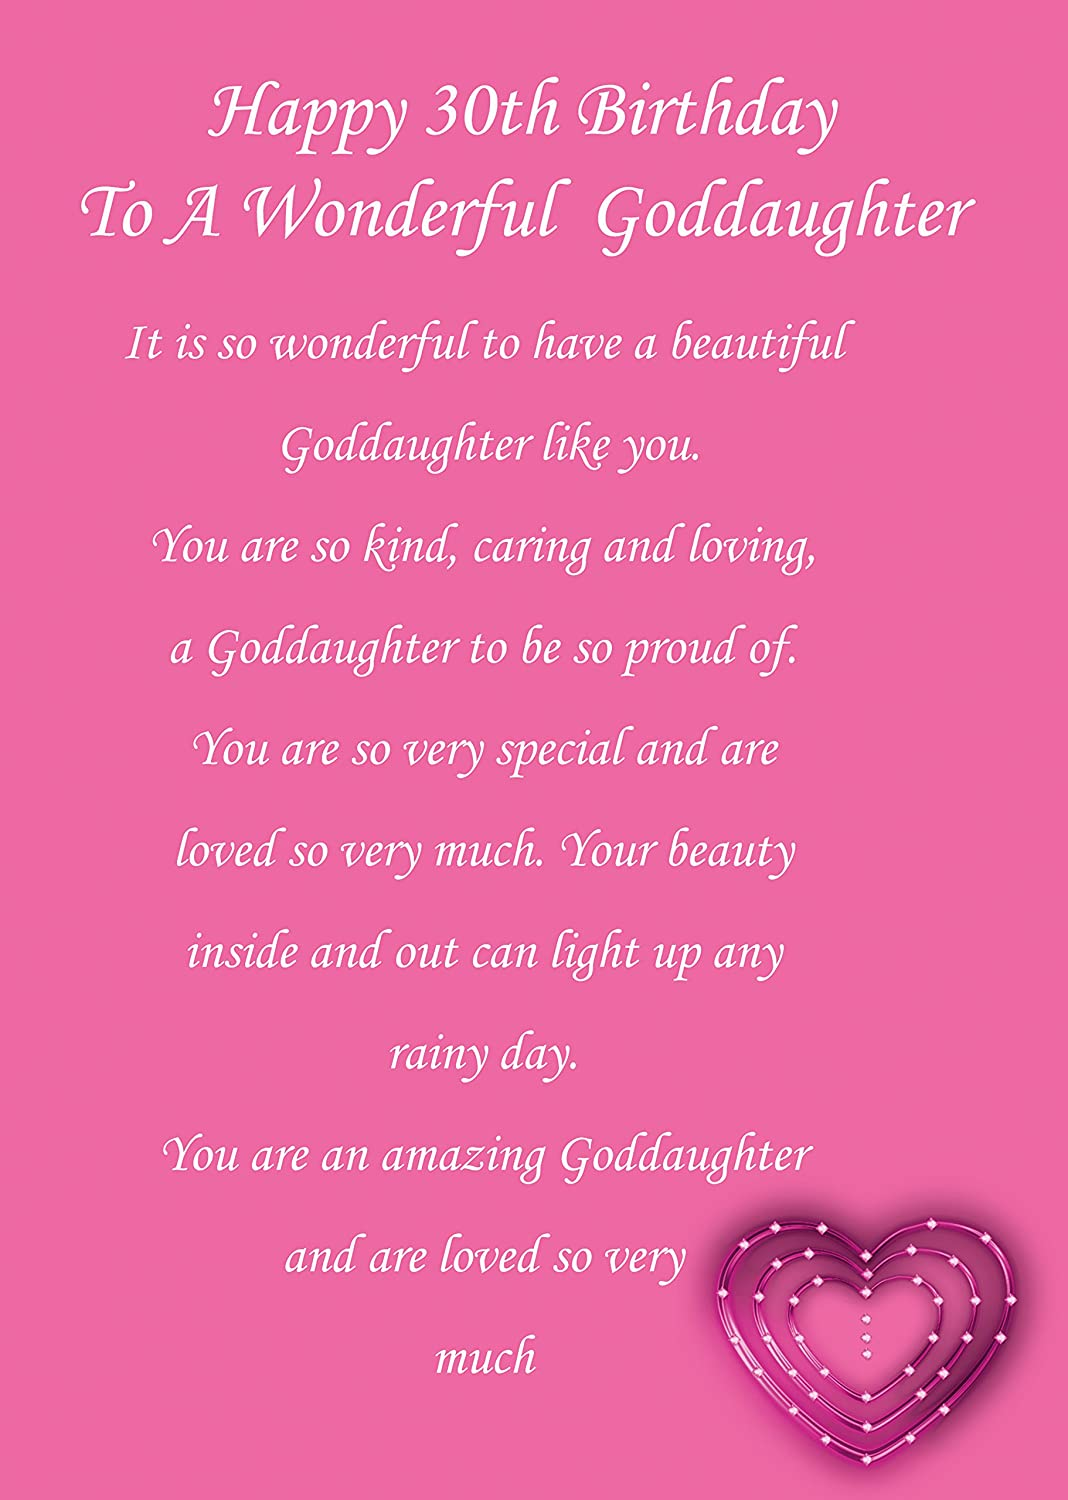 Goddaughter 30th Birthday Card Amazoncouk Office Products – Goddaughter Birthday Cards